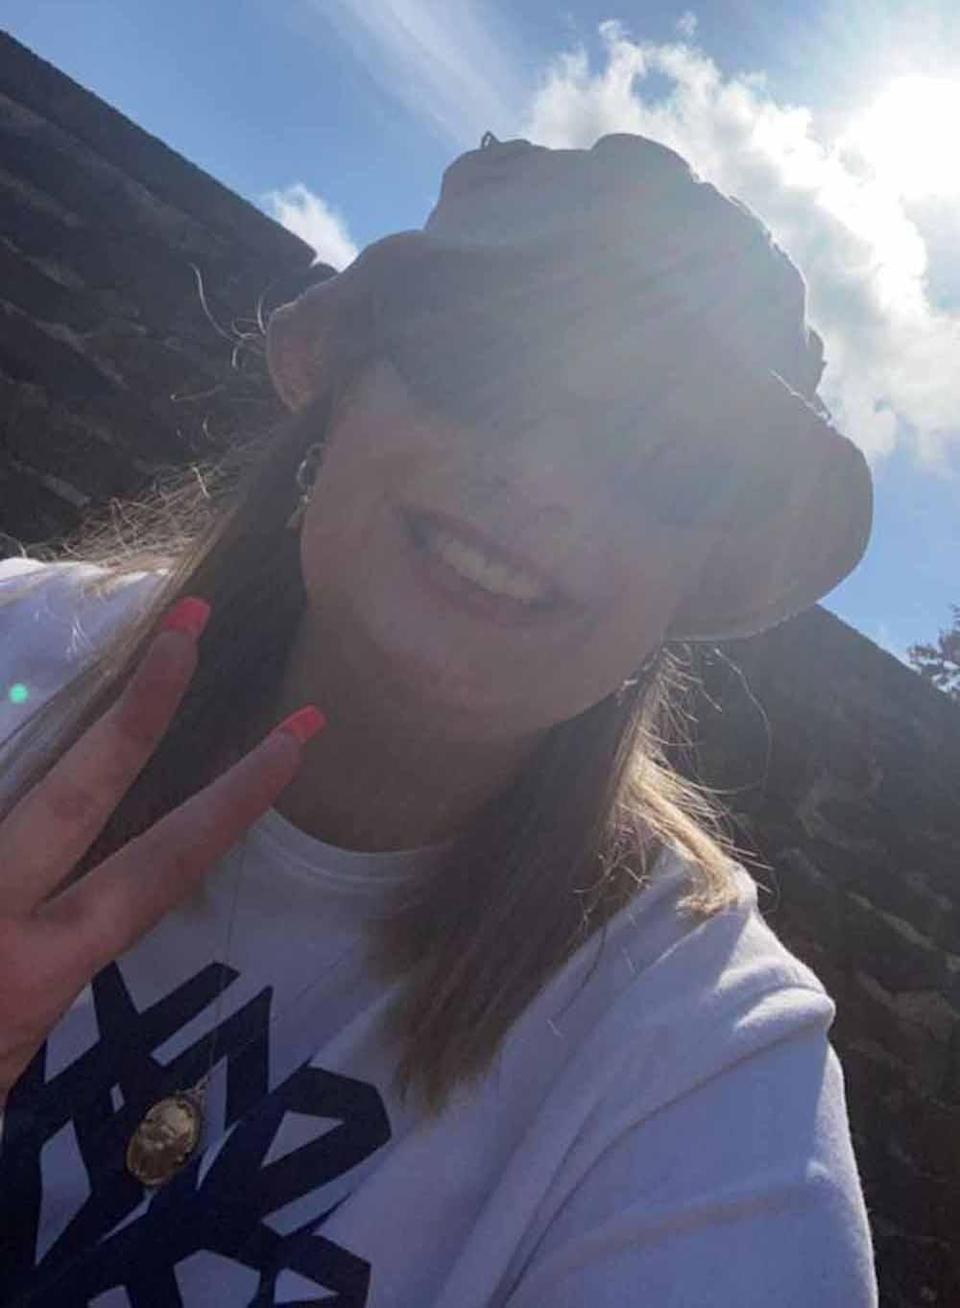 Lauren a week after being in hospital, wearing a hat to protect her from the sun. PA REAL LIFE